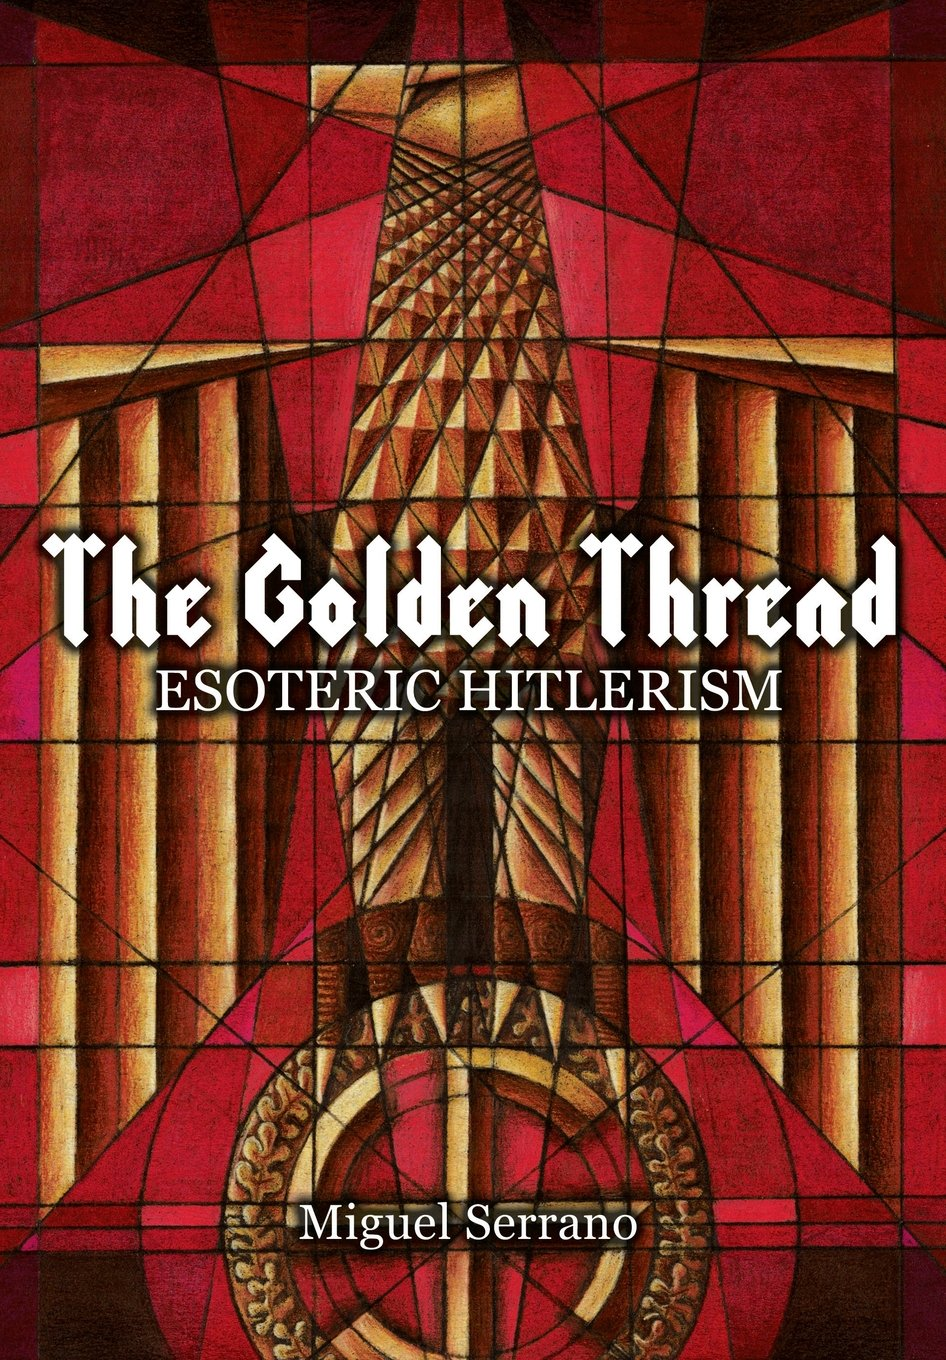 The Golden Thread: Esoteric Hitlerism: Miguel Serrano, Sabela P ...